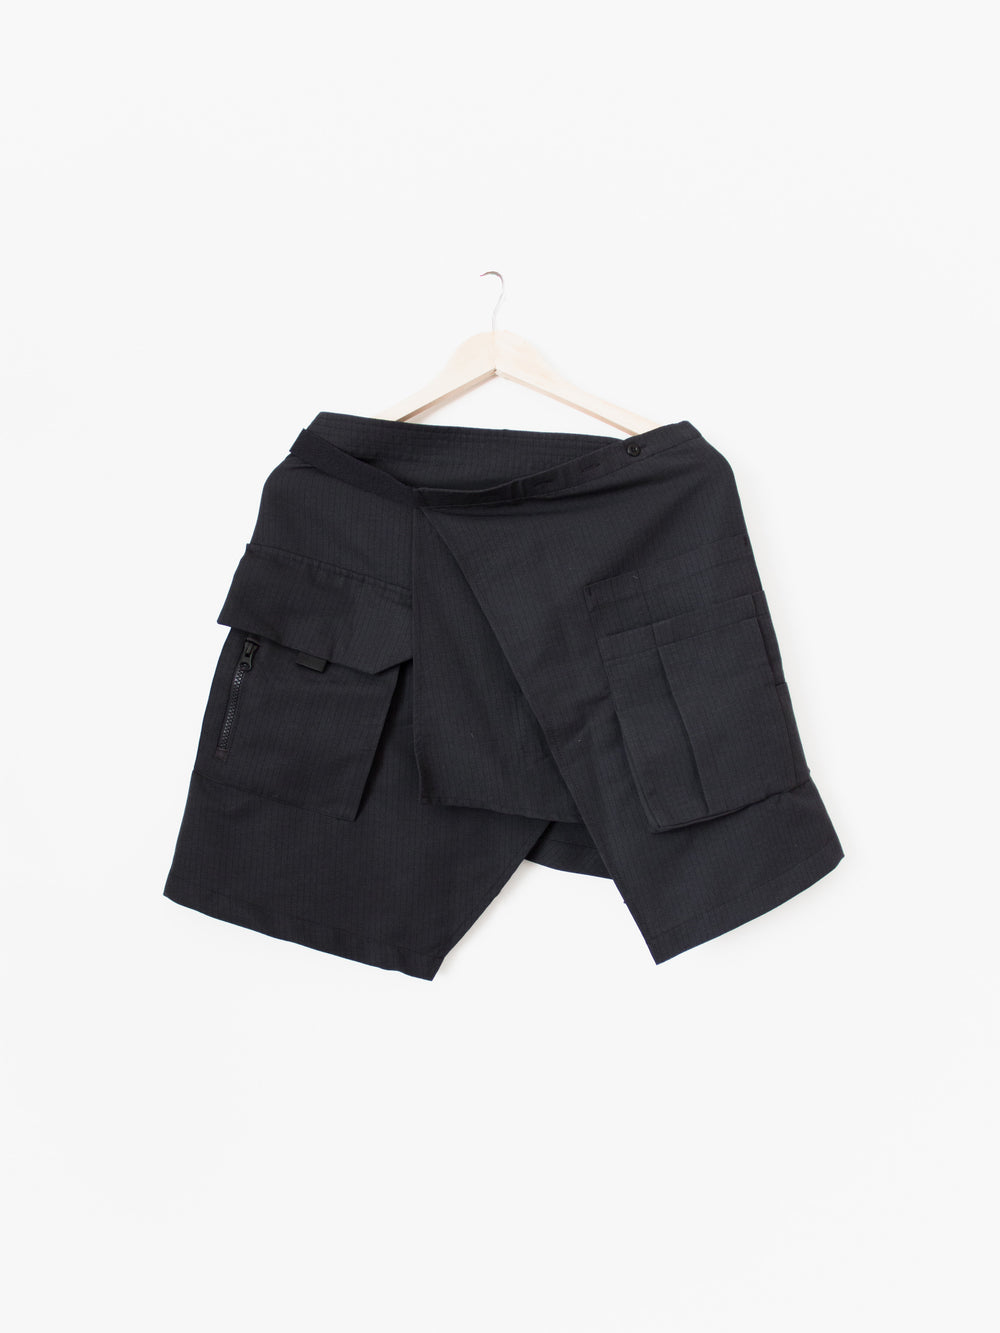 Guerrilla Group SS16 Wrap Cargo Skirt